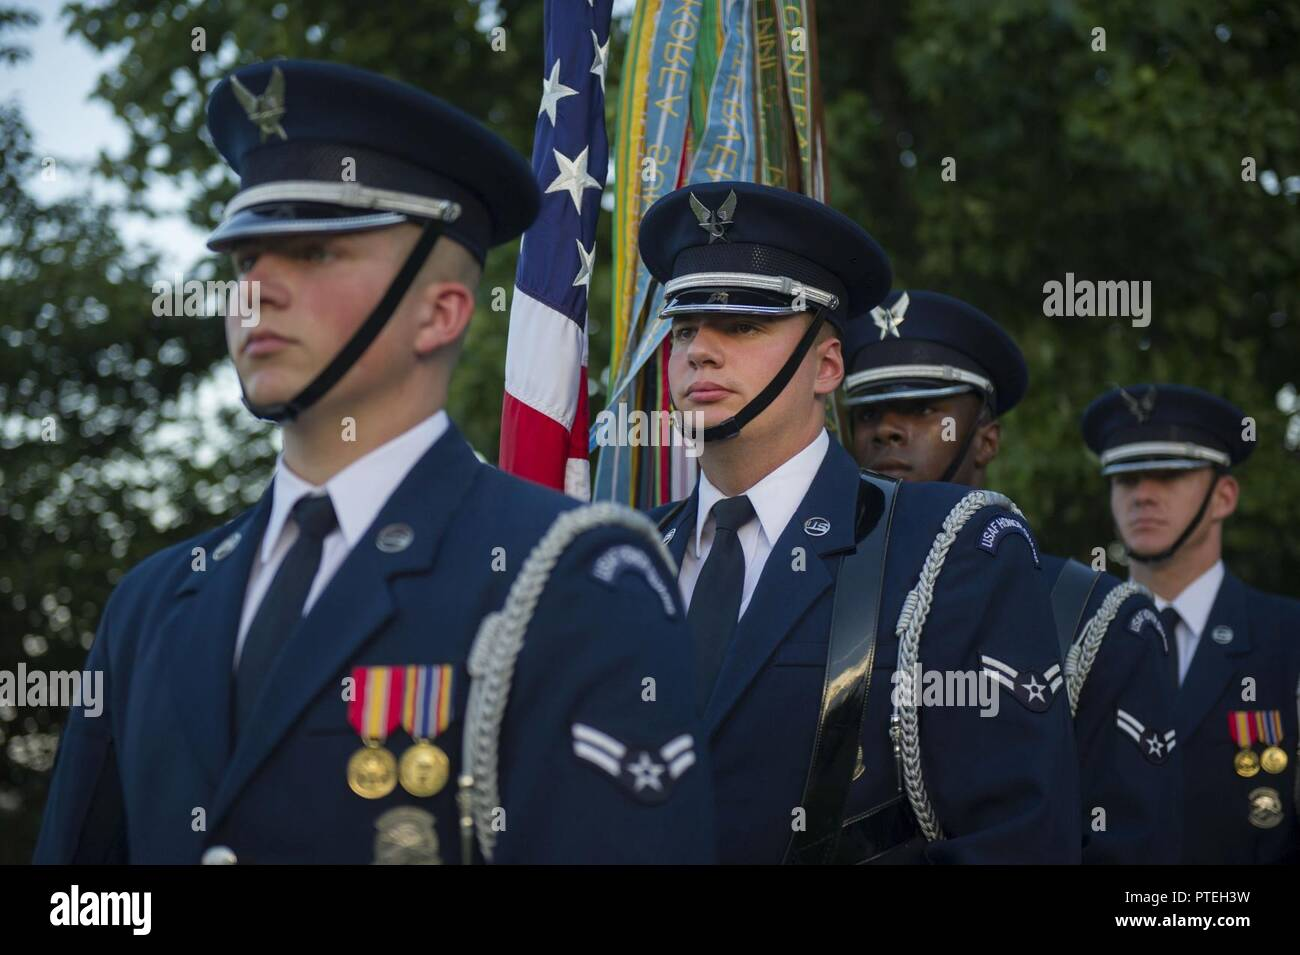 The United States Air Force Honor